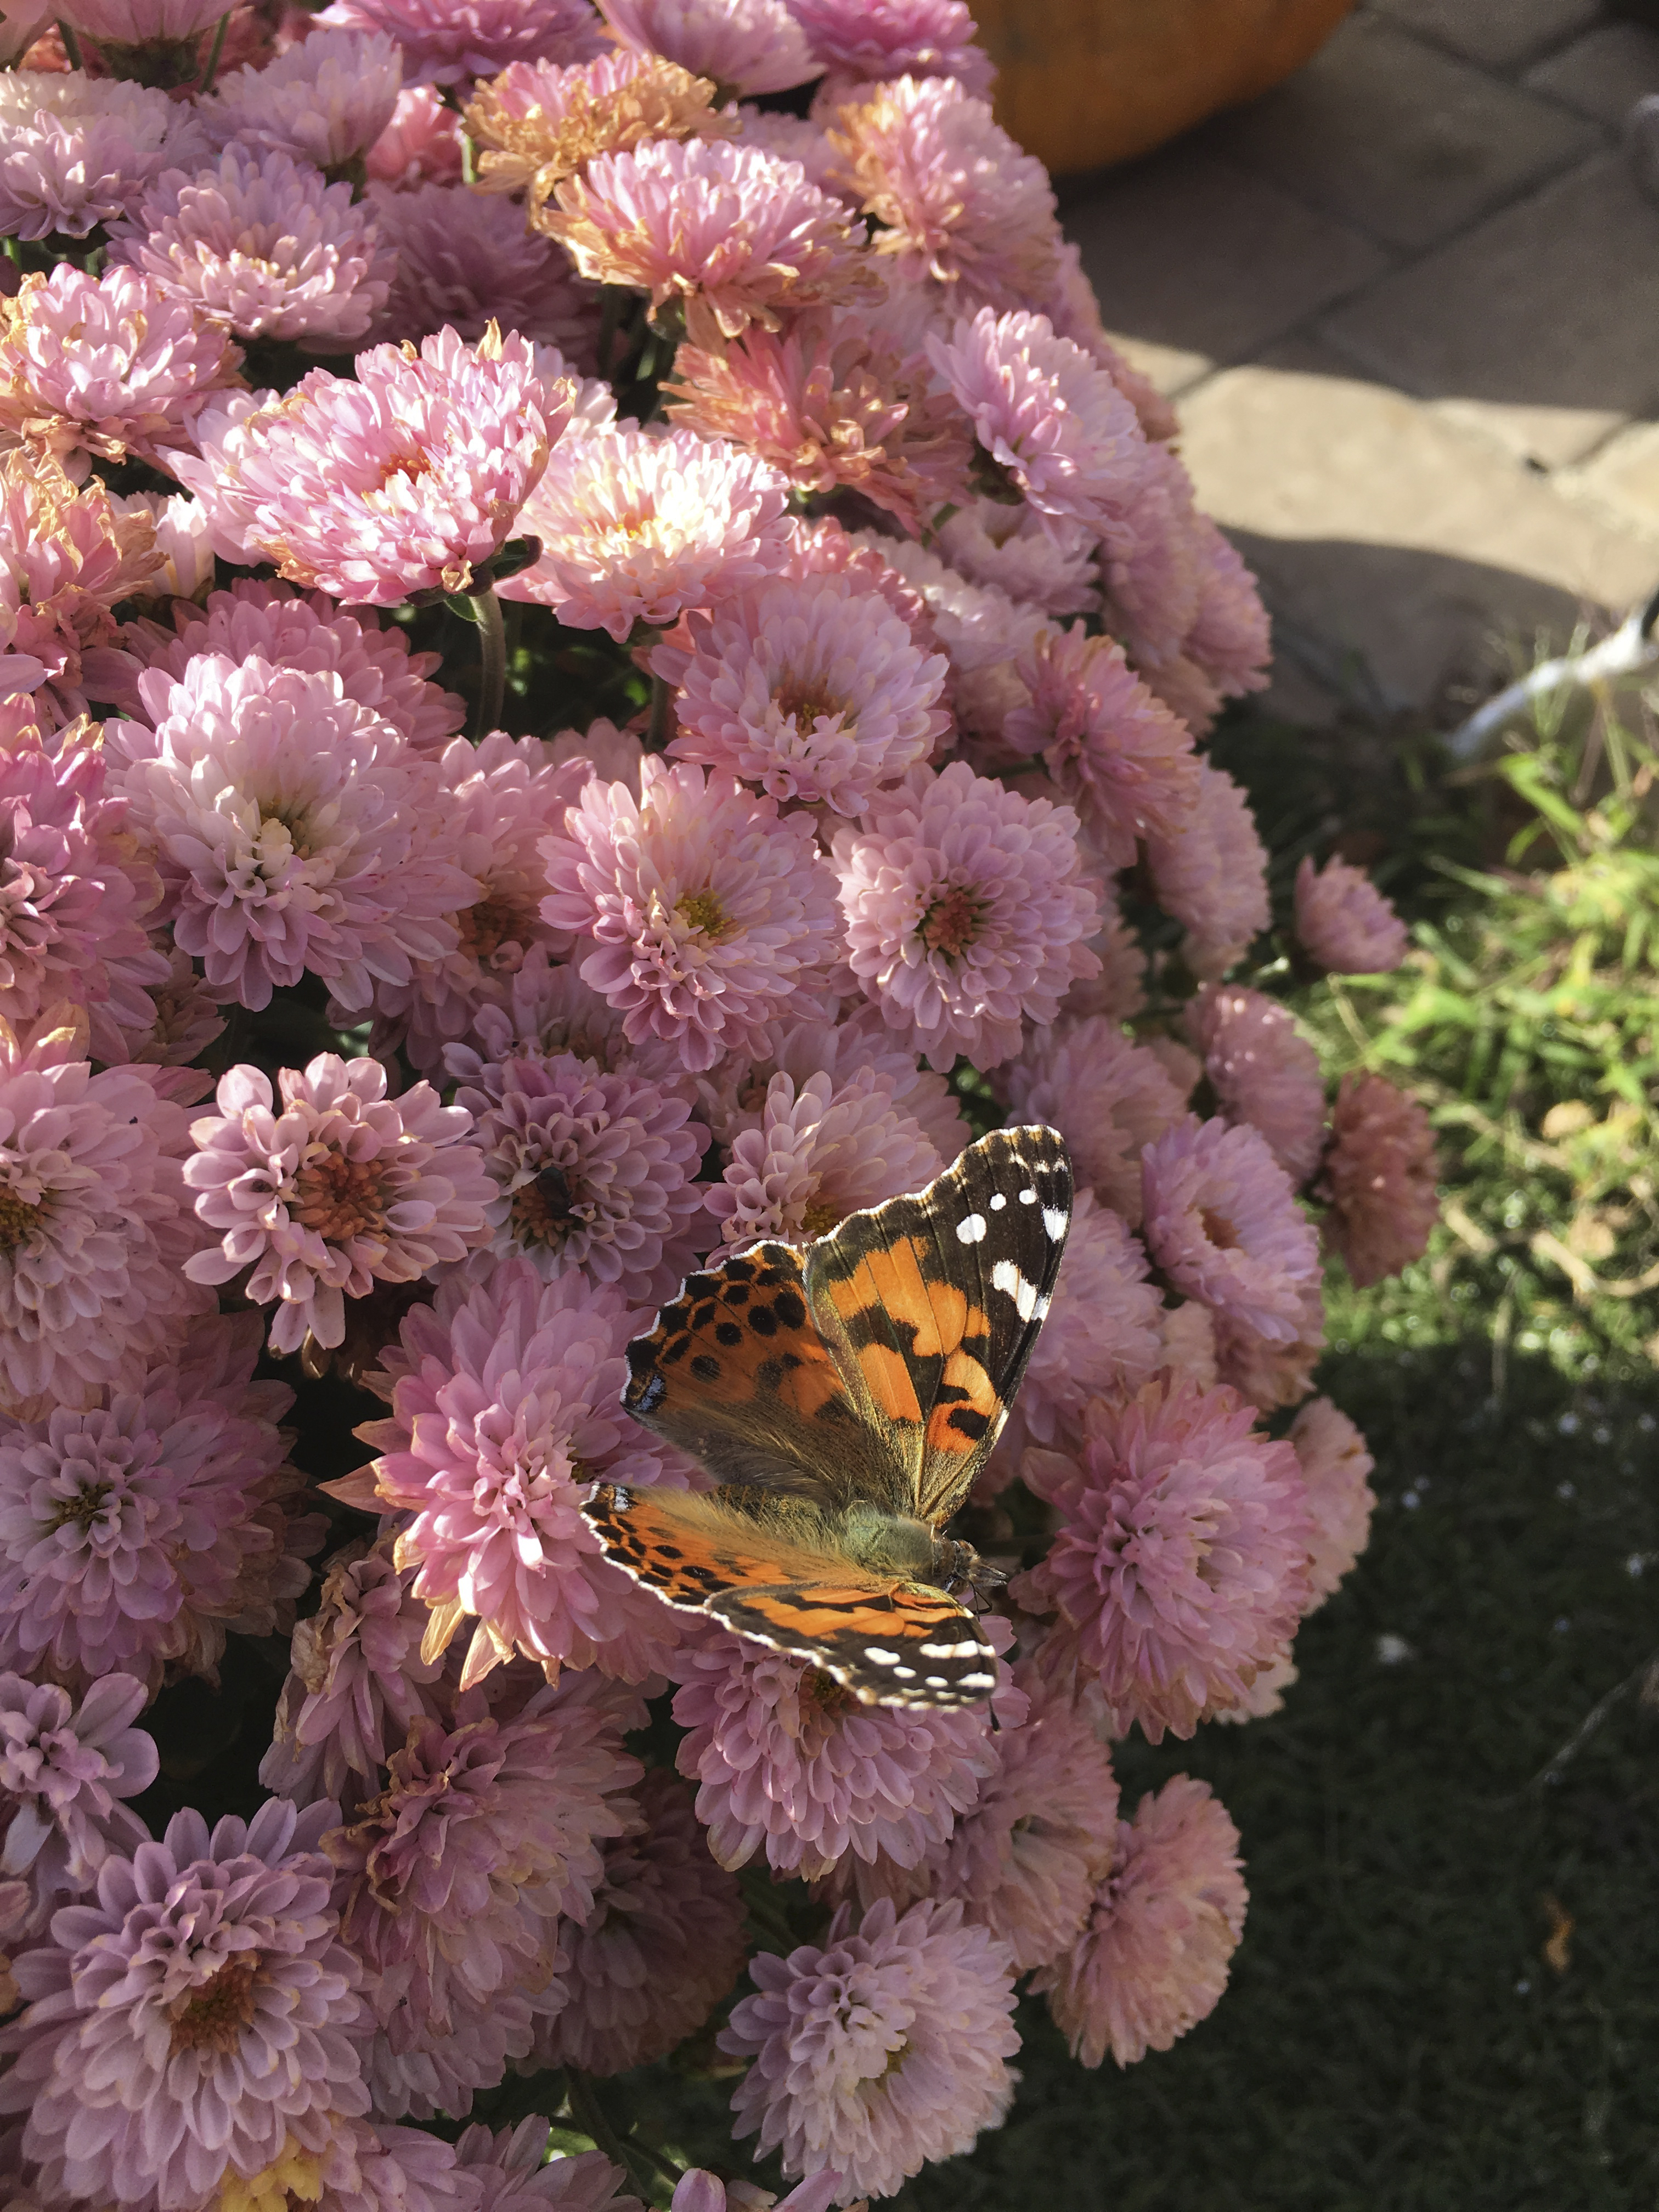 A painted lady butterfly sitting on a mum.